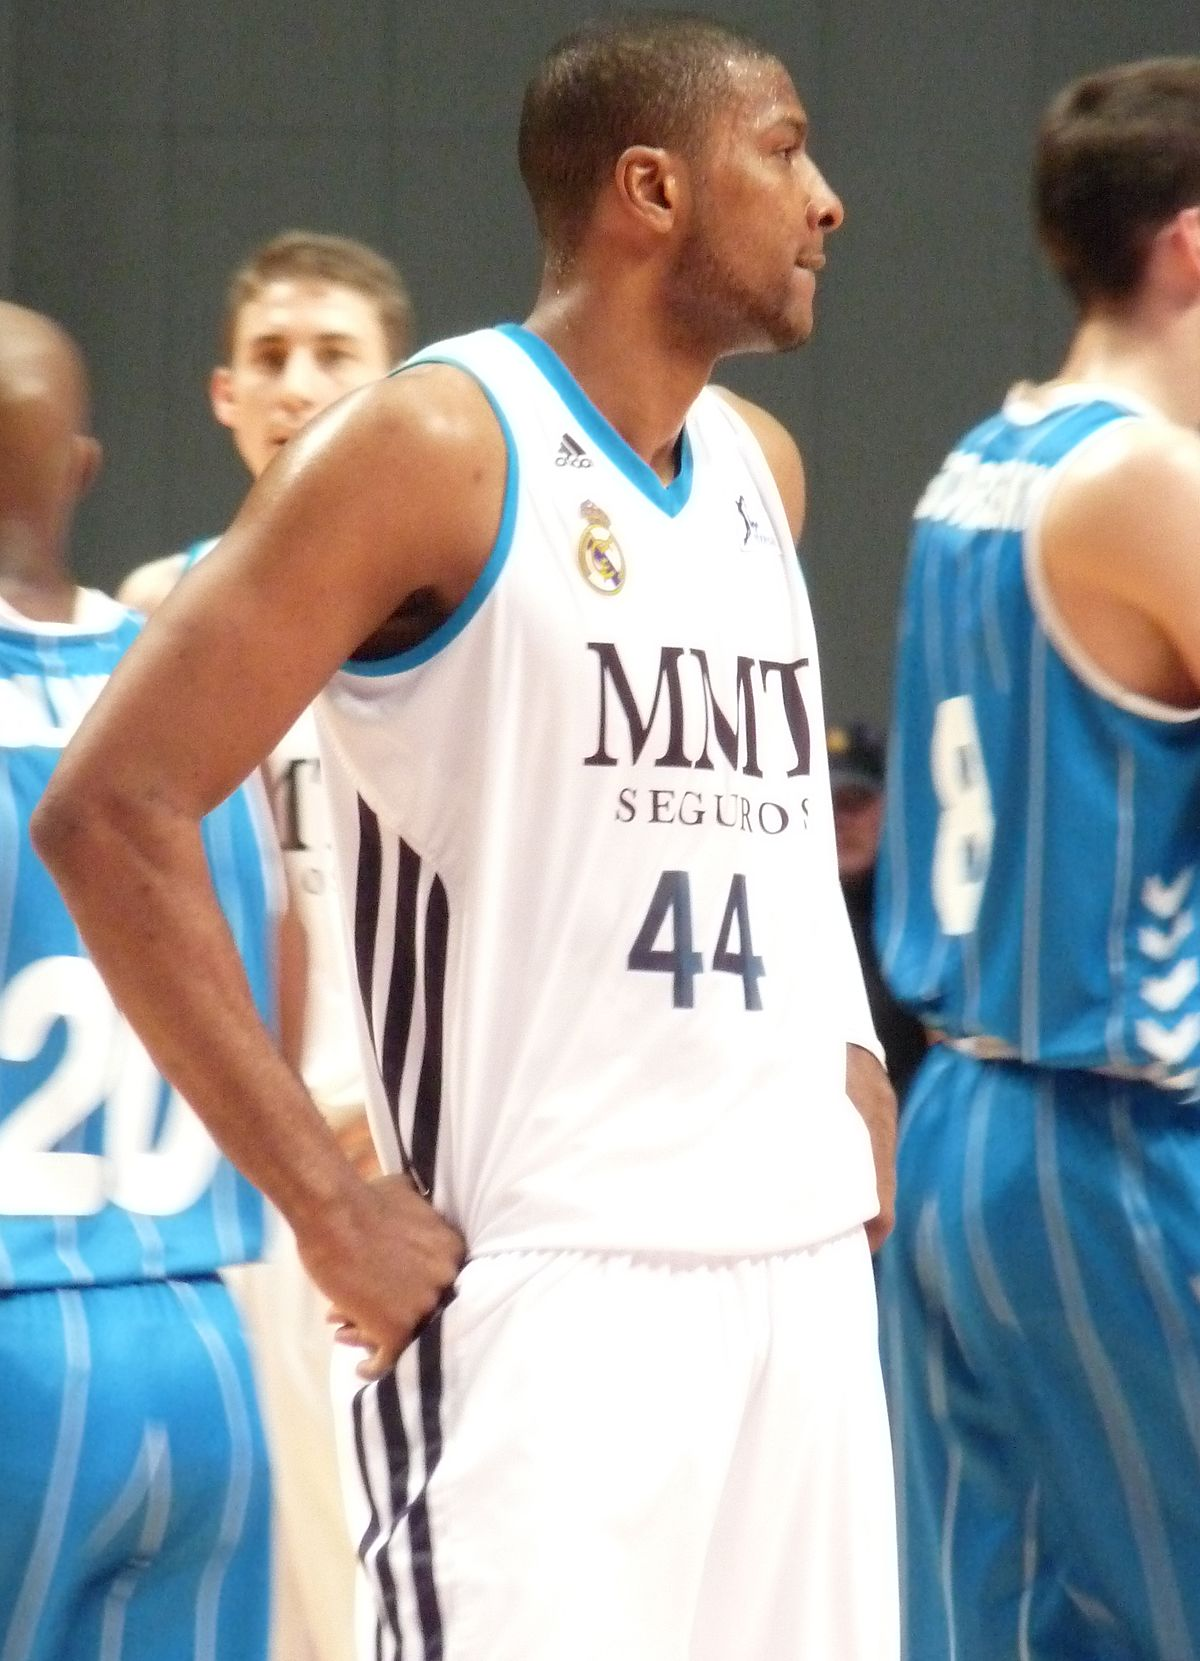 310d247627f0 Marcus Slaughter - Wikipedia